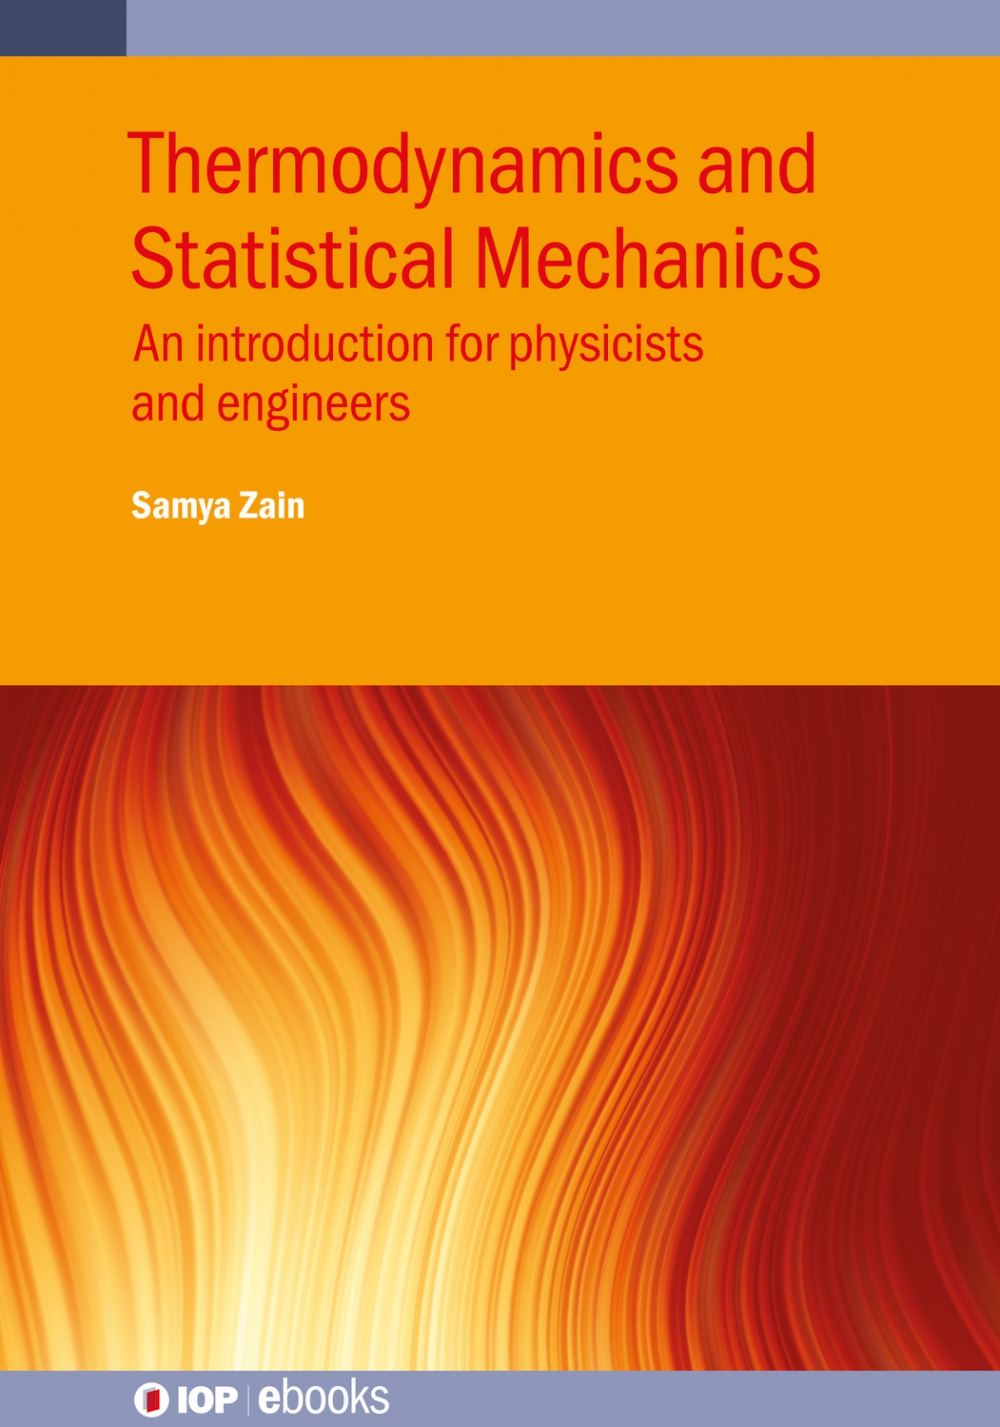 Jacket image for Thermodynamics and Statistical Mechanics